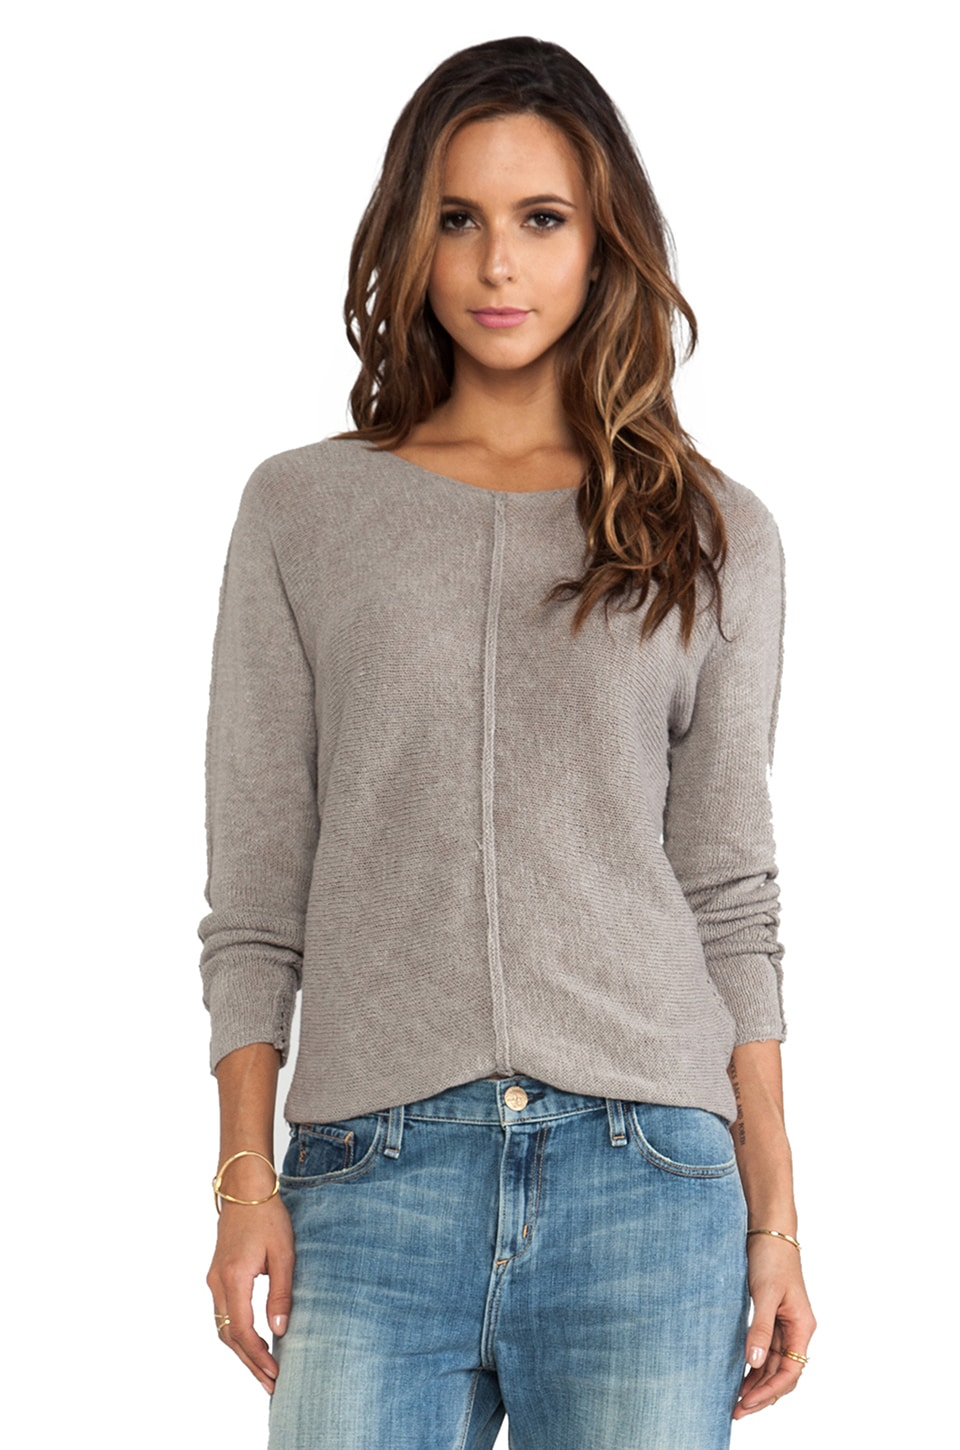 Line Coastal Sweater in Tawny